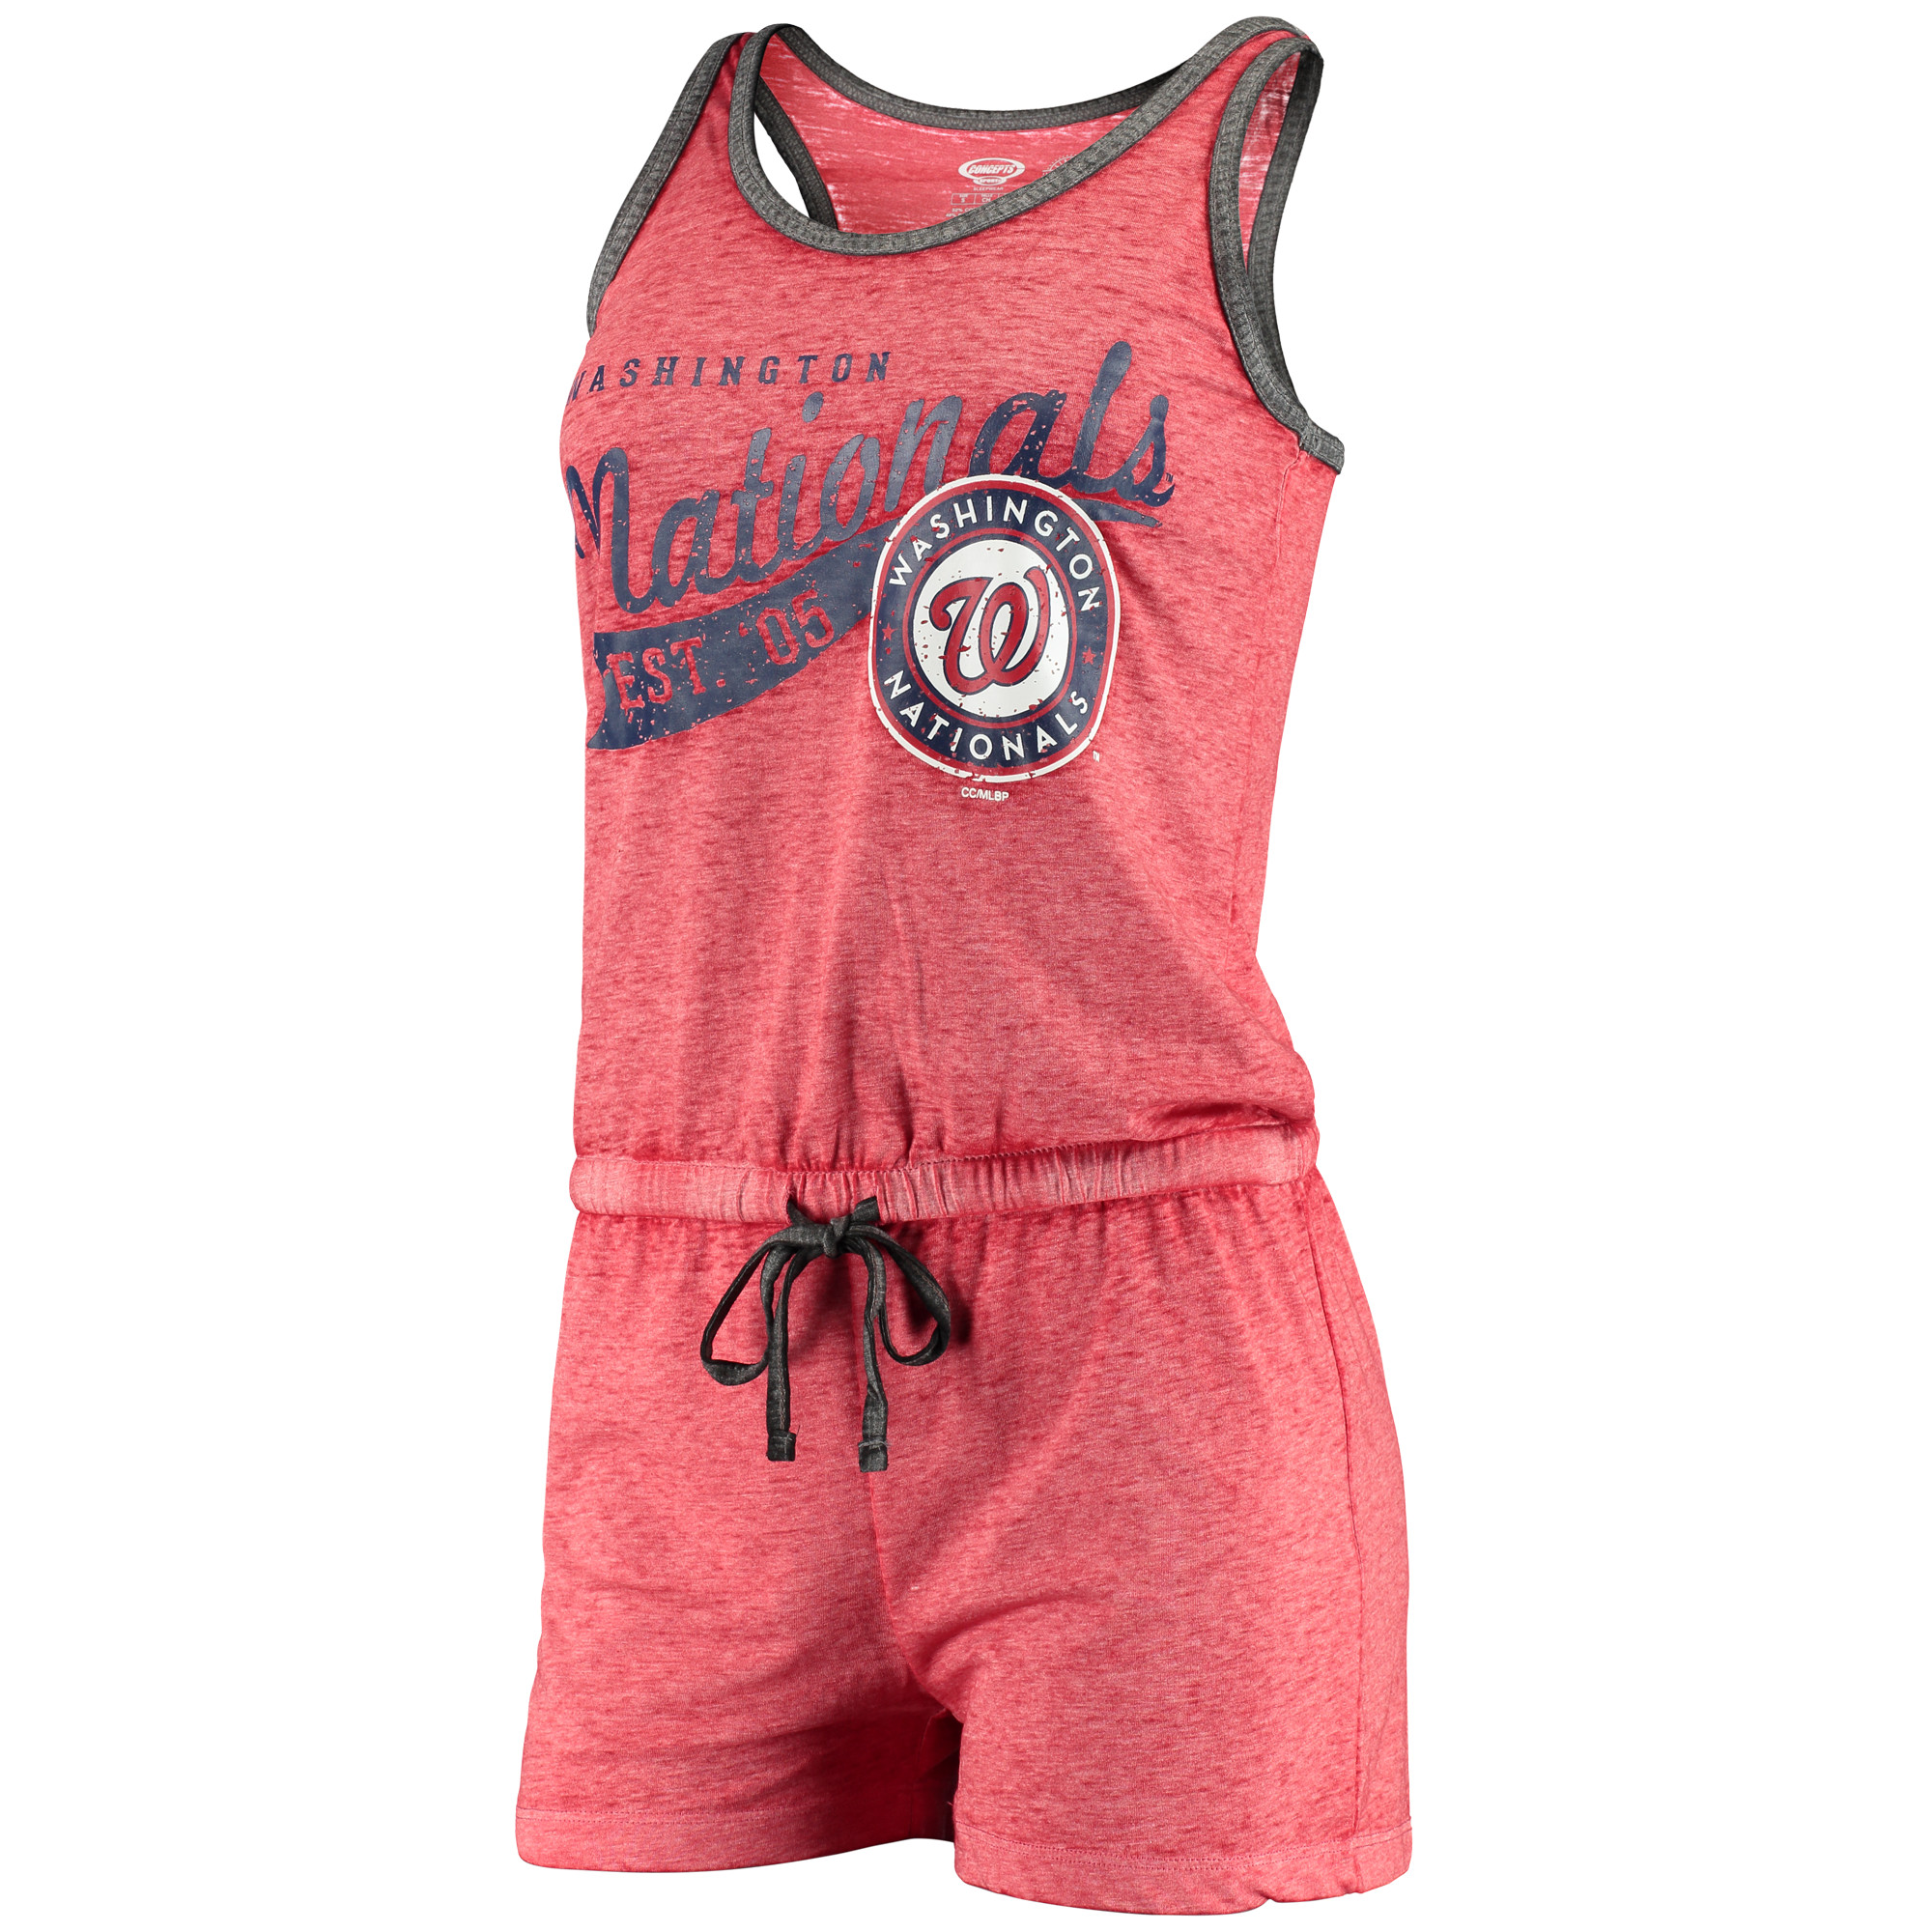 Washington Nationals Concepts Sport Women's Deed Sleep Romper Pajamas - Heathered Red